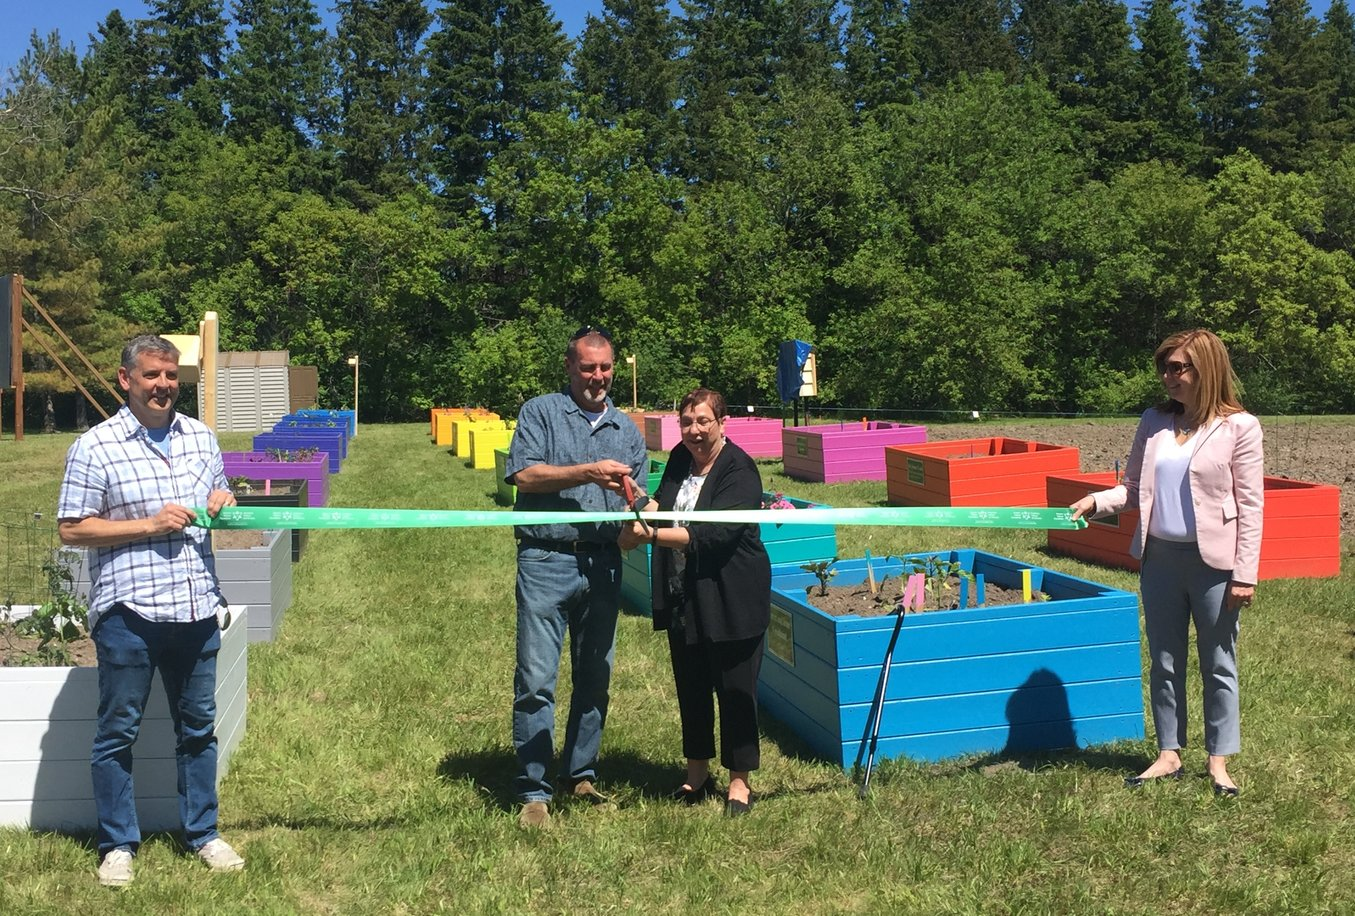 United Way unveils large scale community garden project